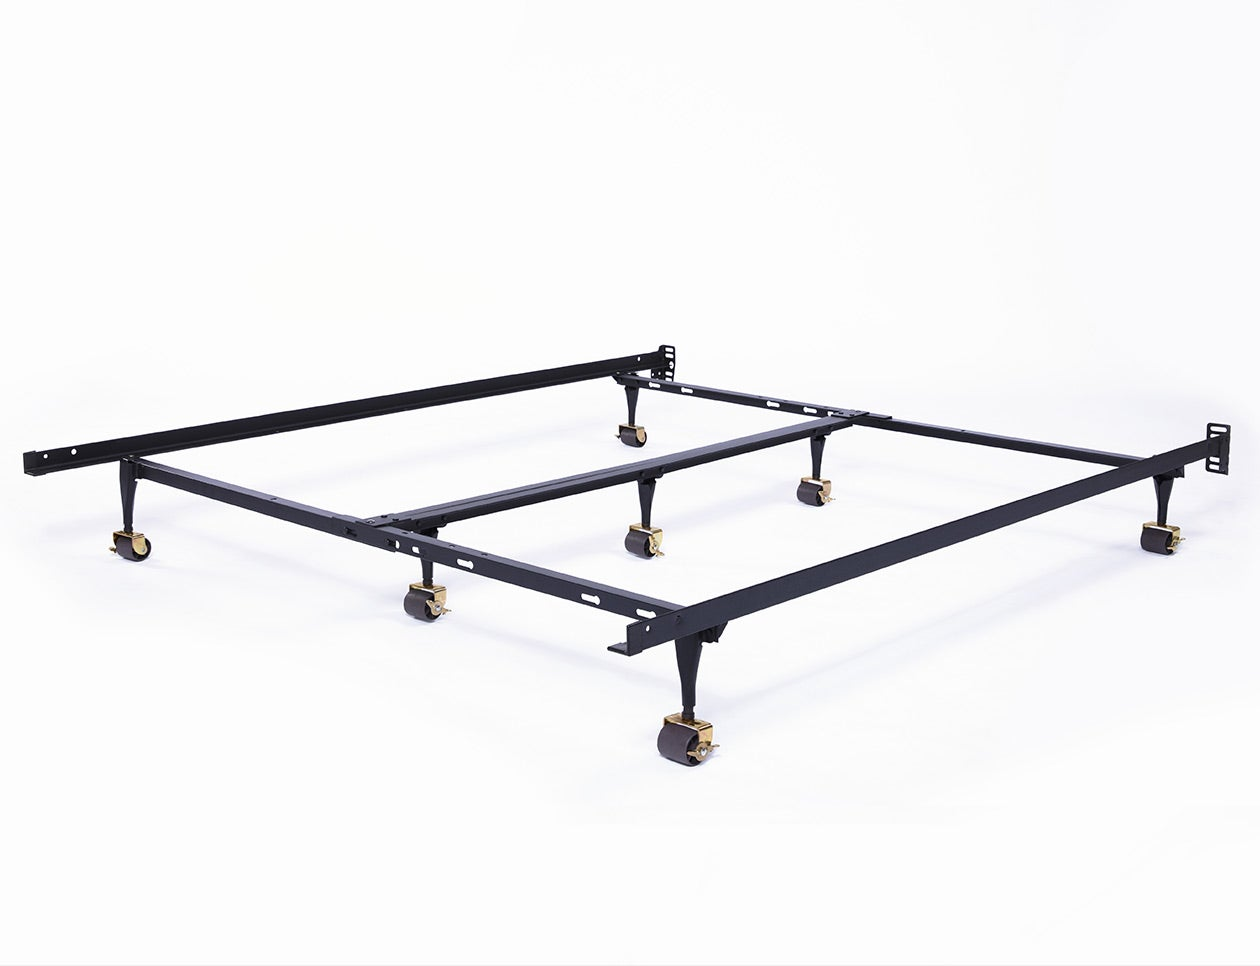 Metal Bed Frame: Best Metal Platform Bed Frames | Nectar Sleep